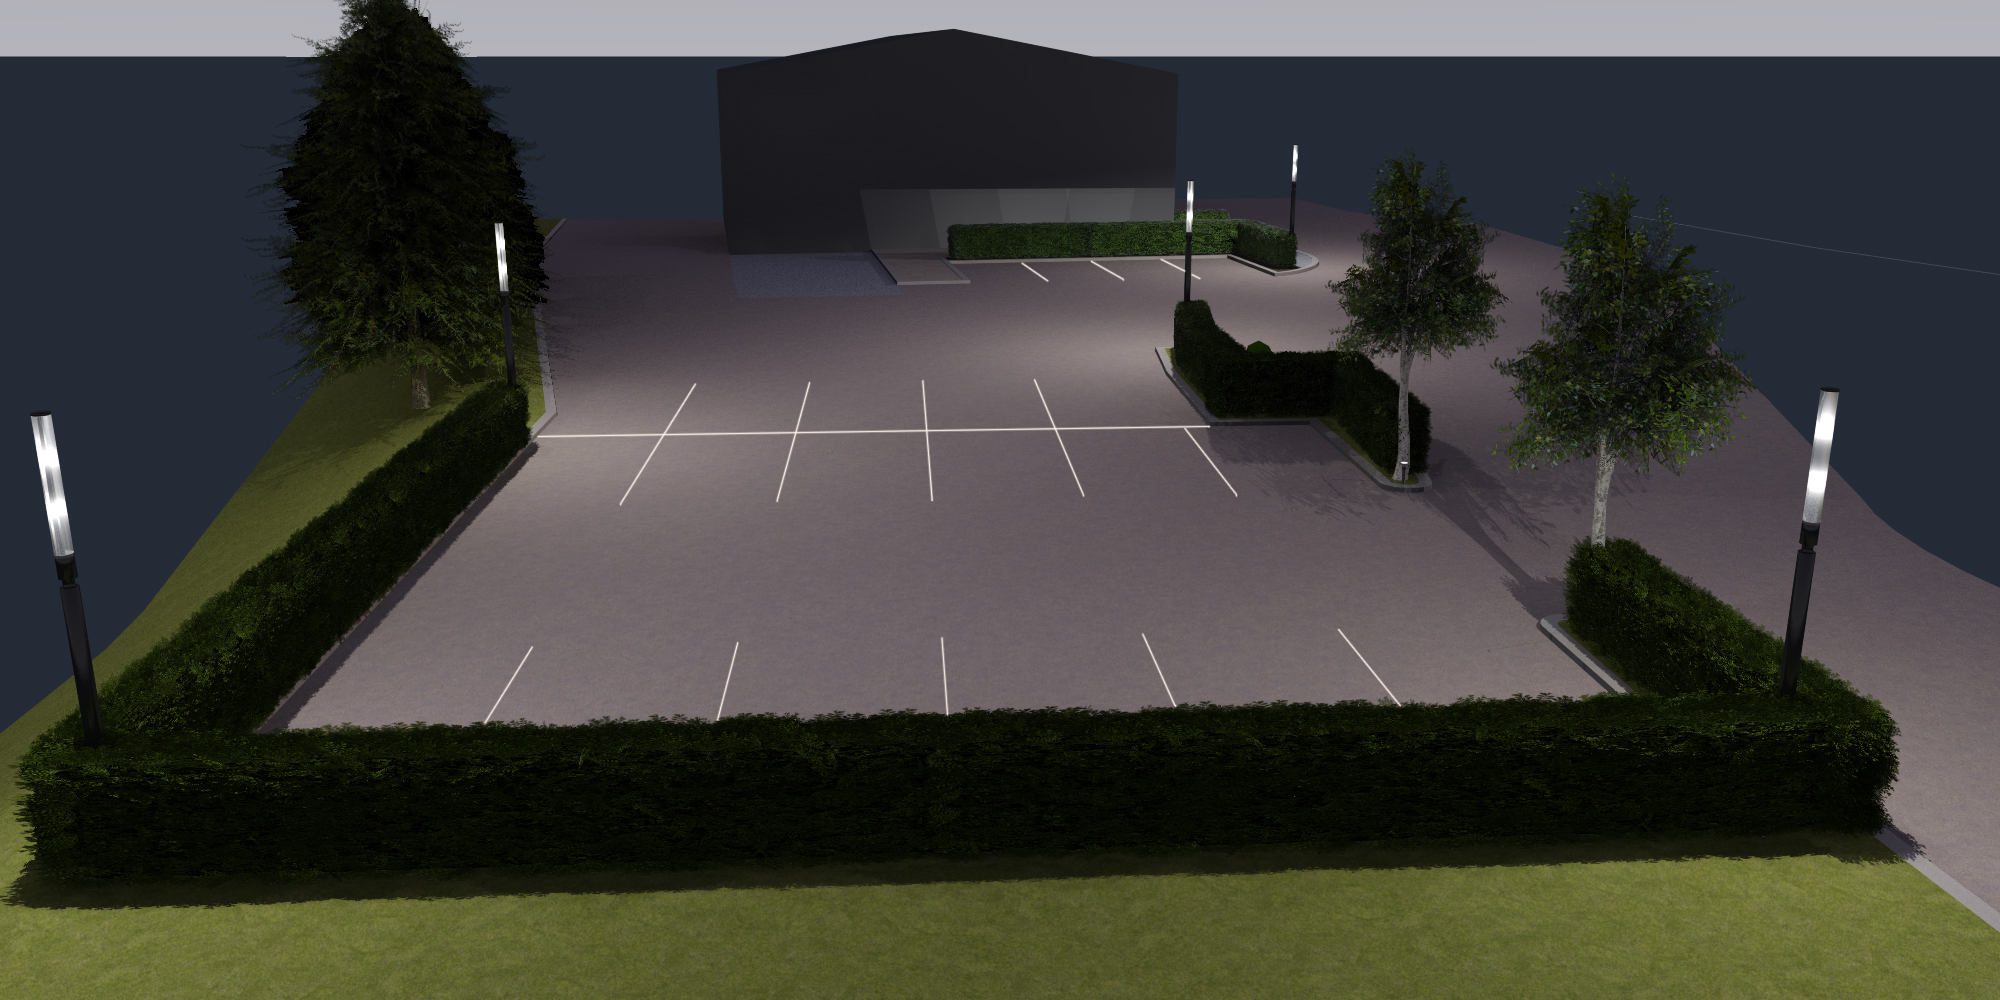 How to Increase Car Park Efficiency & Save Space